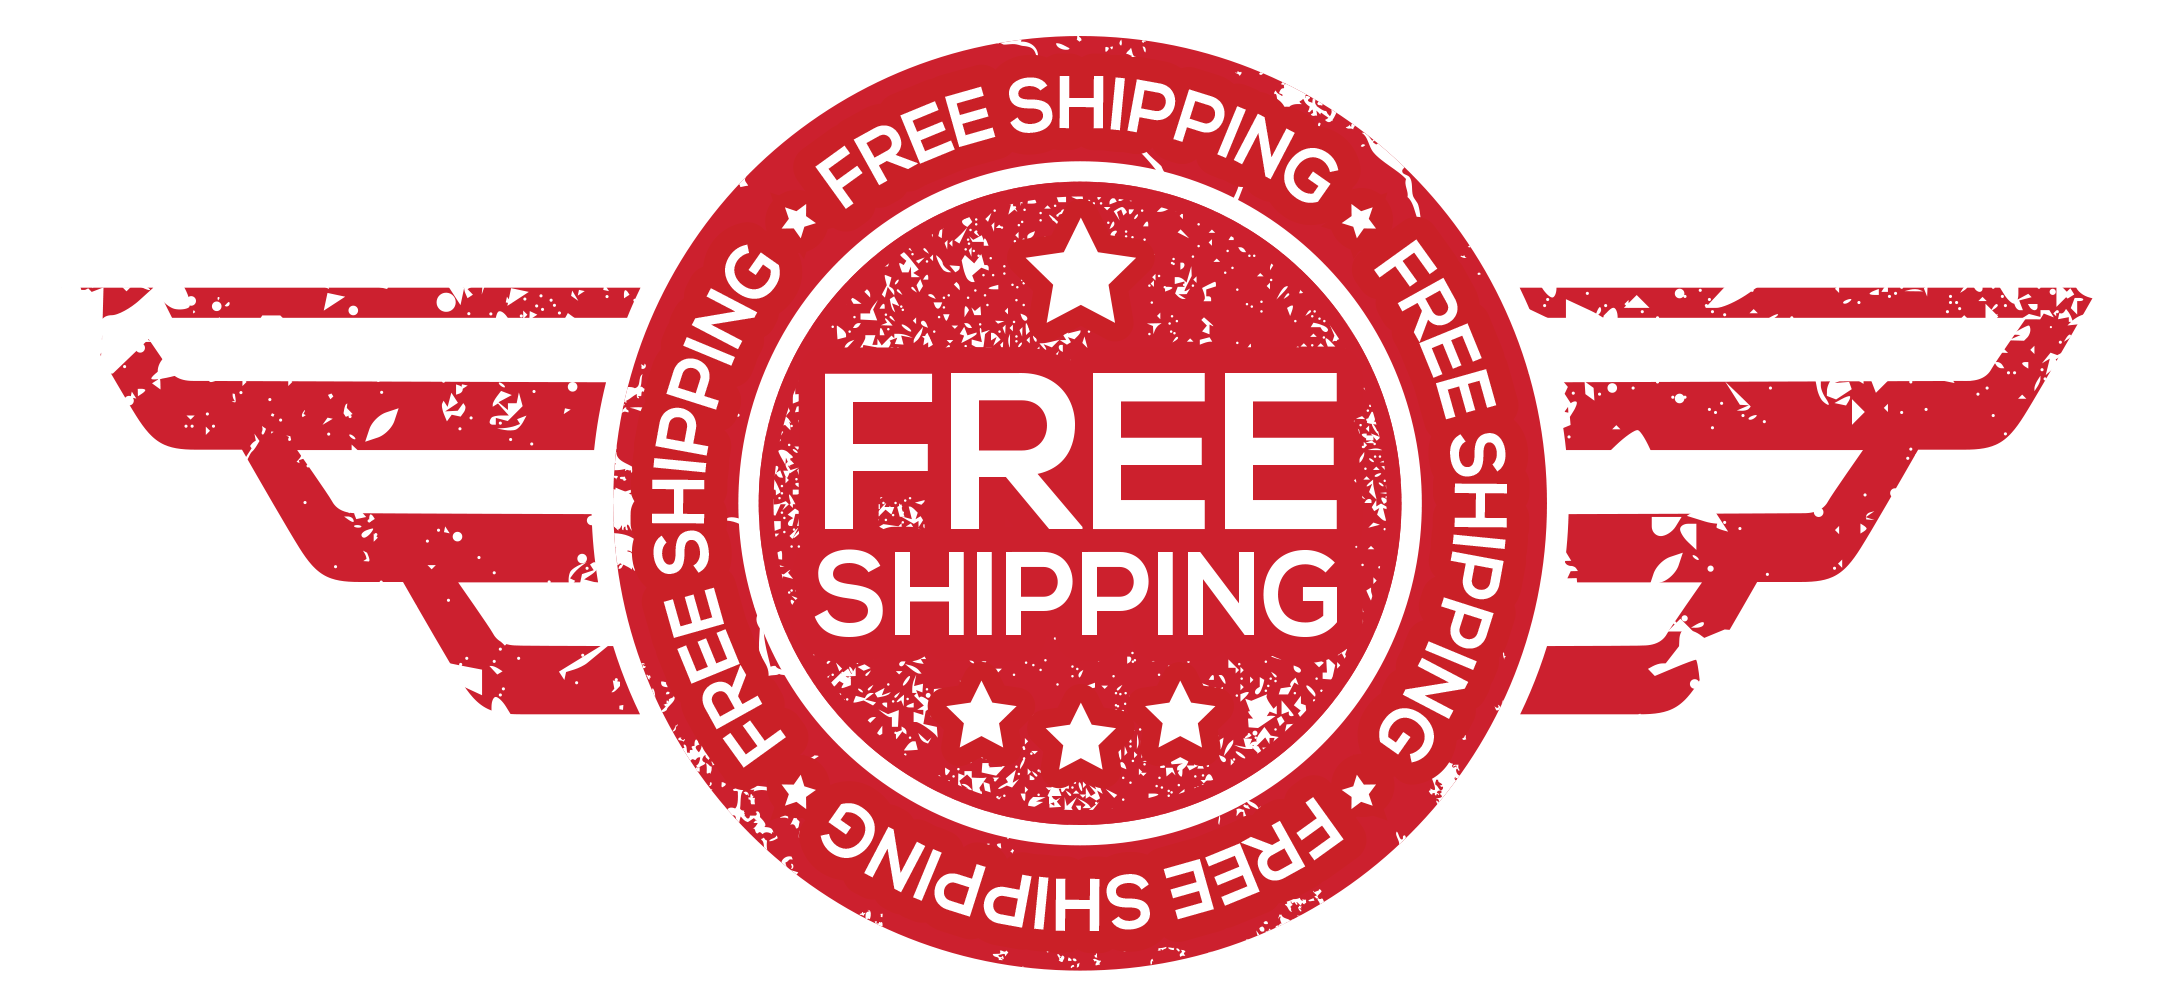 Download Free Shipping Transparent.